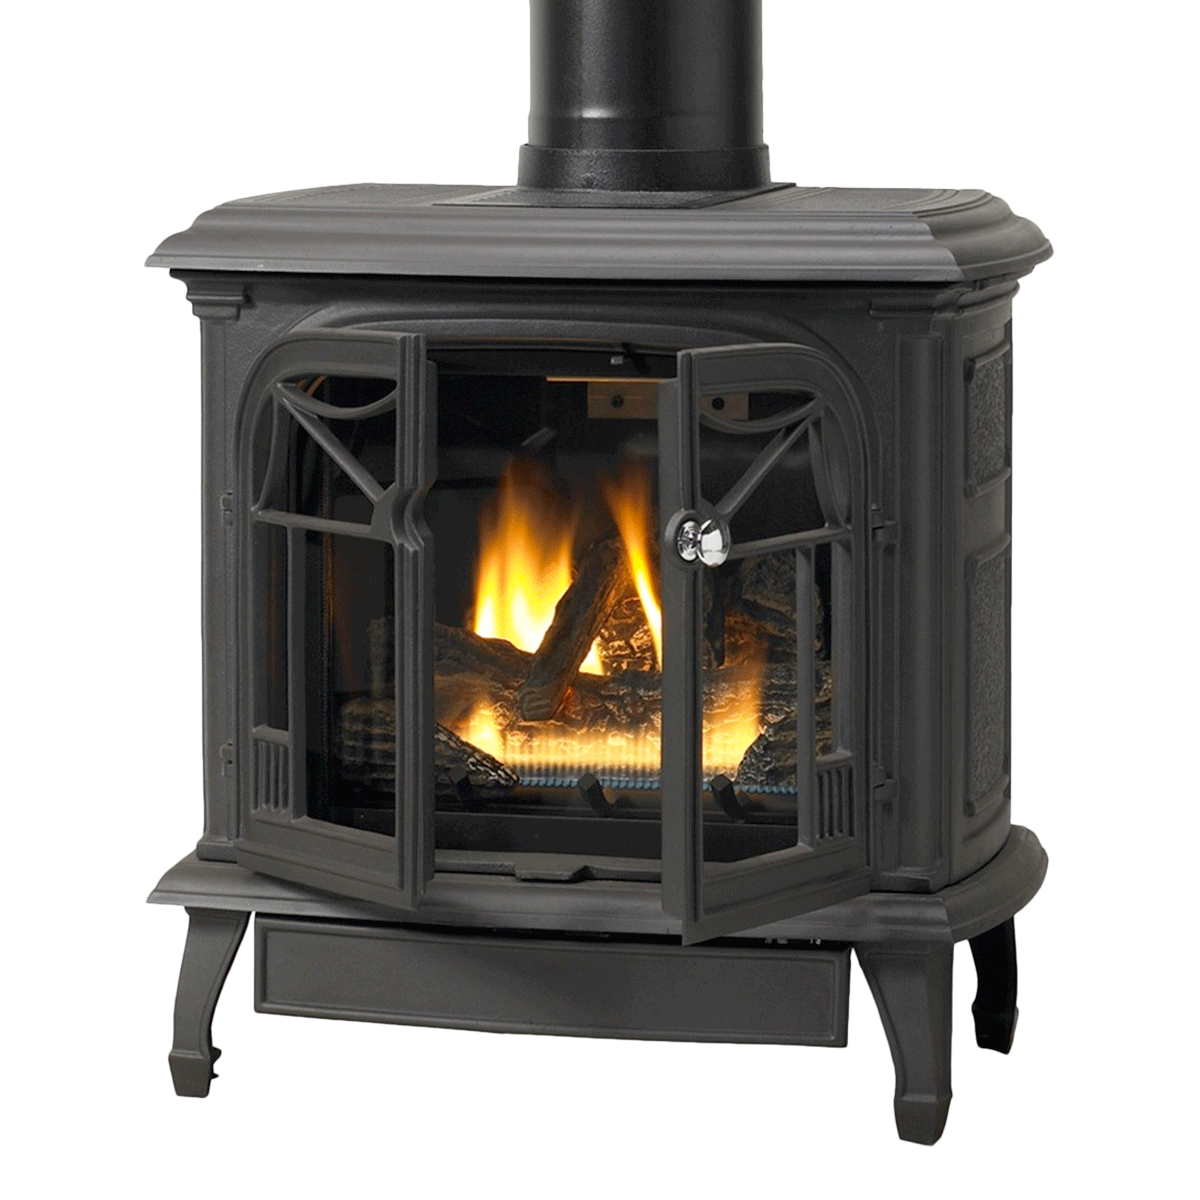 duravent chimney pipe vent fireplace b northline oval express